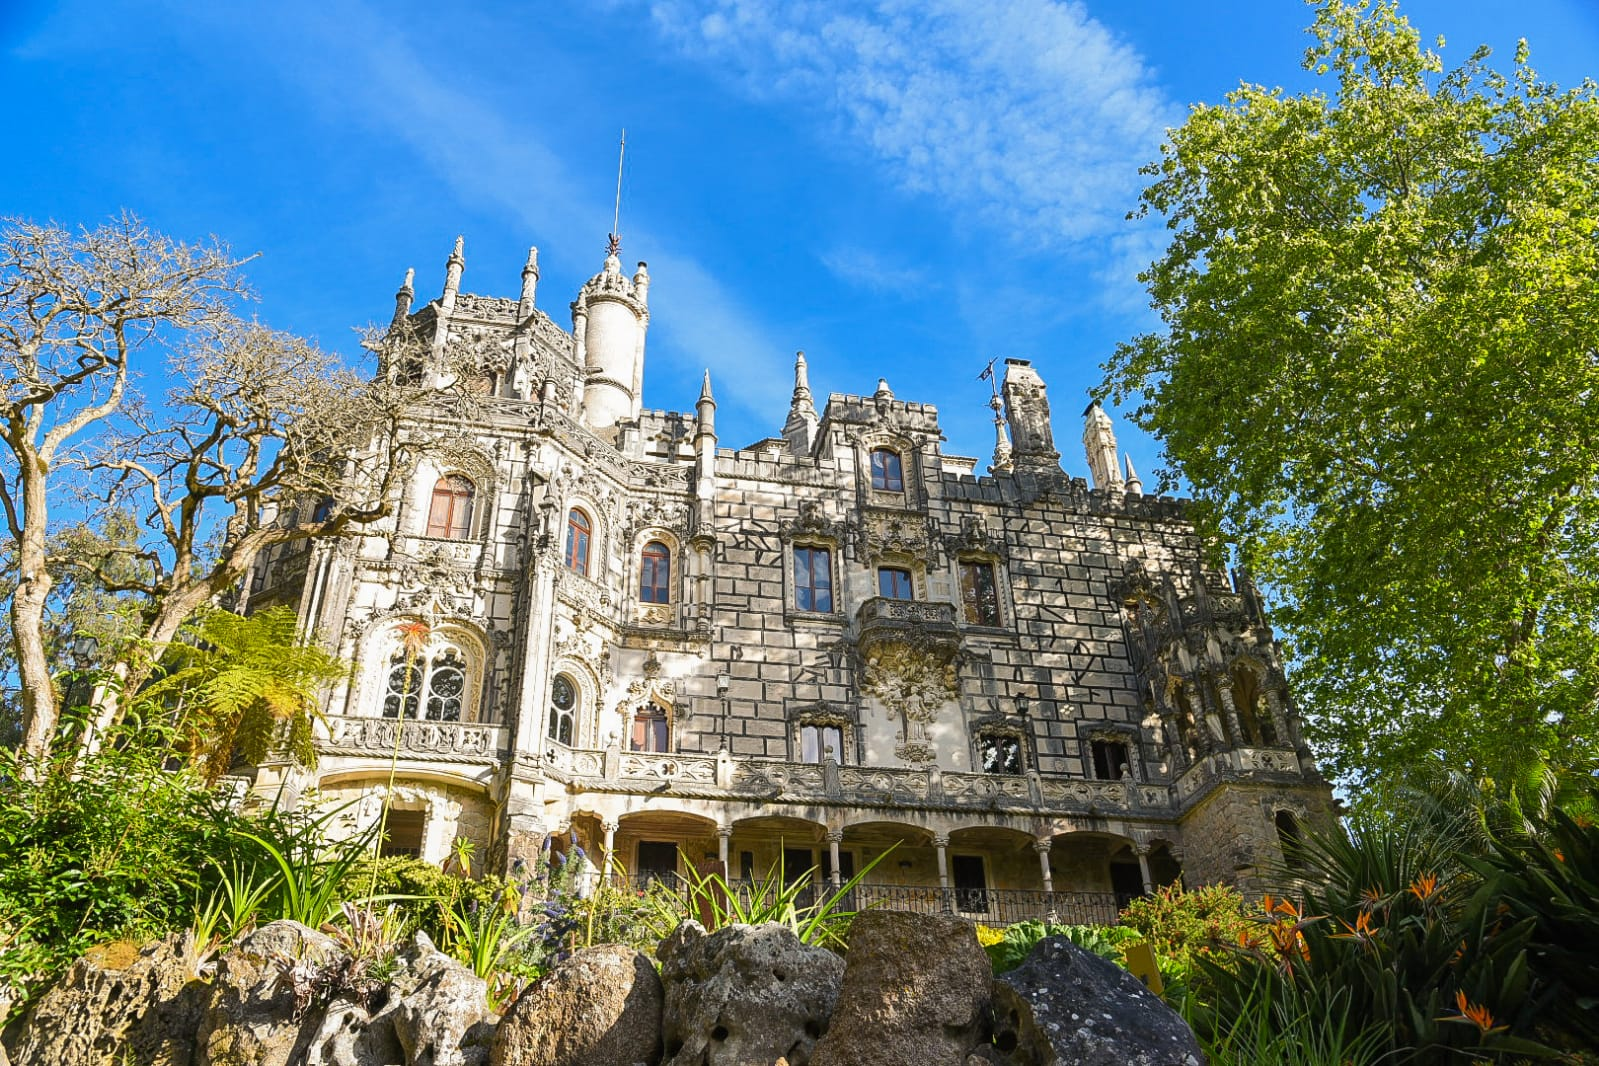 Discover The Most Amazing Historical Places In Portugal  discover Discover The Most Amazing Historical Places In Portugal PHOTO 2019 04 16 10 09 54